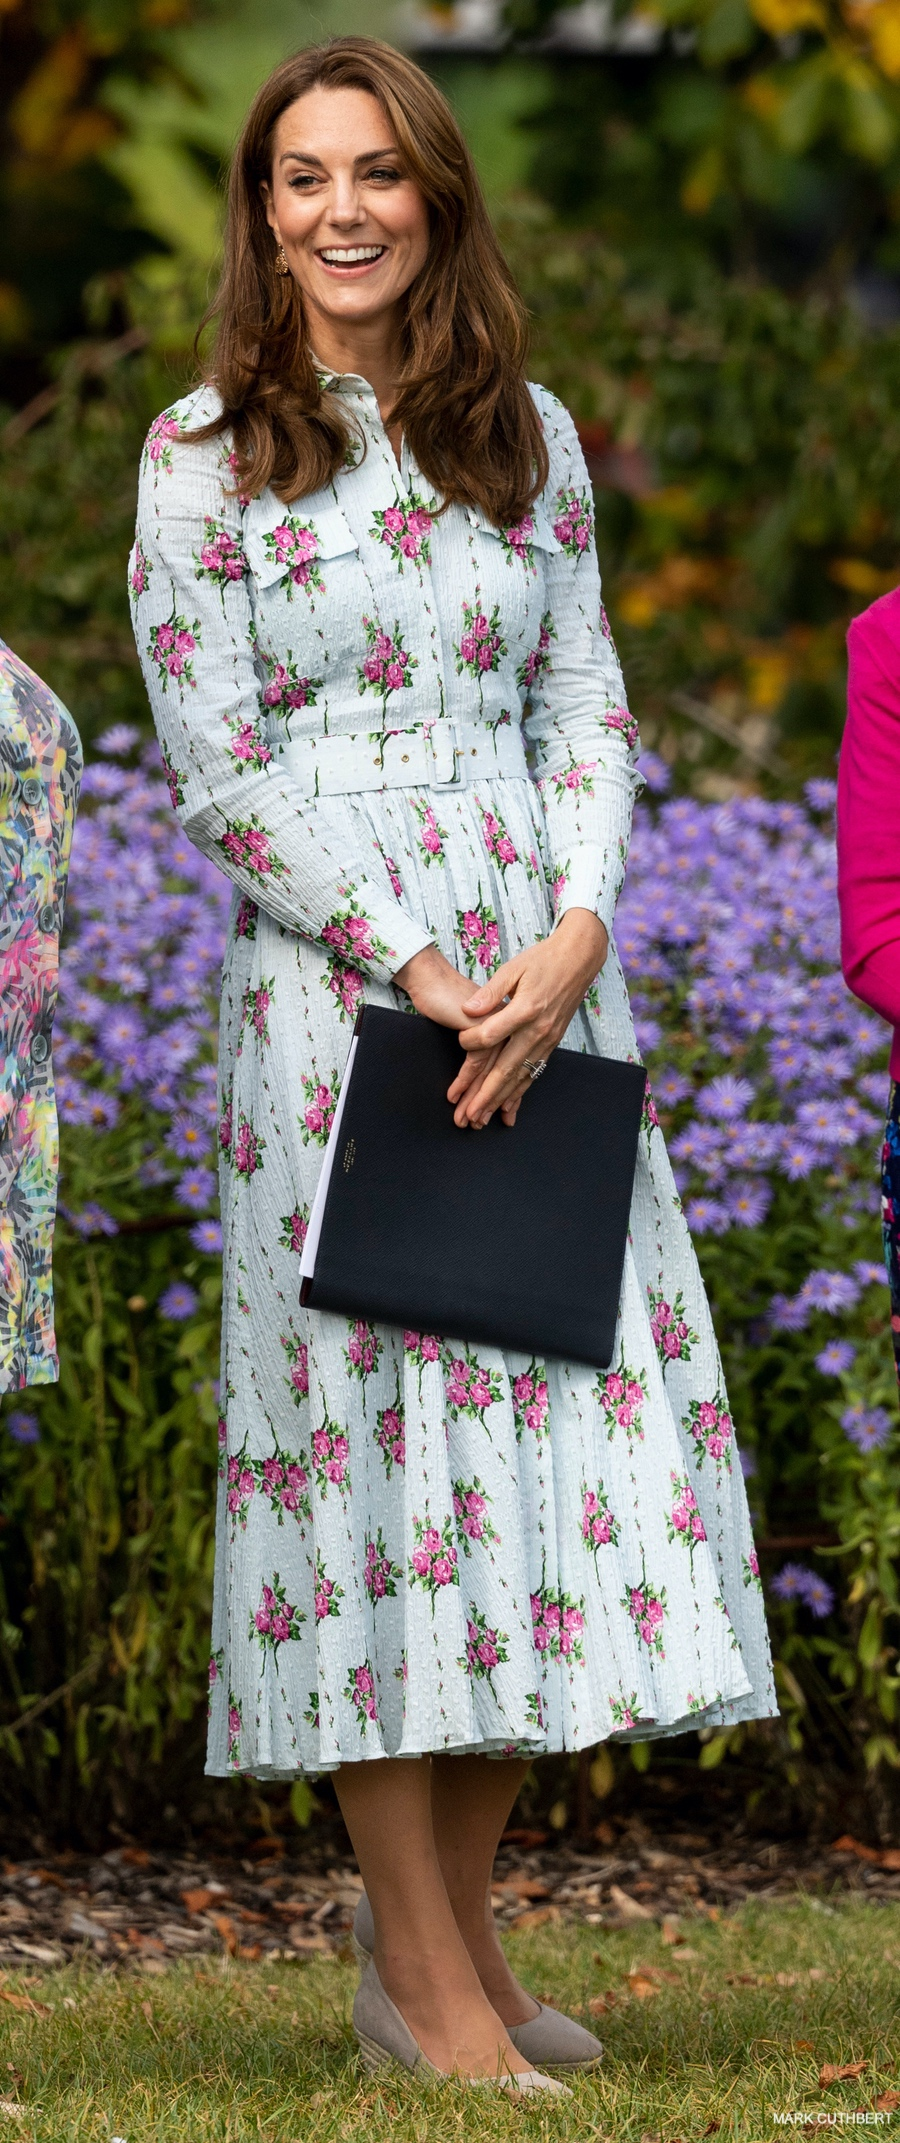 The Duchess of Cambridge officially opens the Back to Nature Garden at RHS Wisley